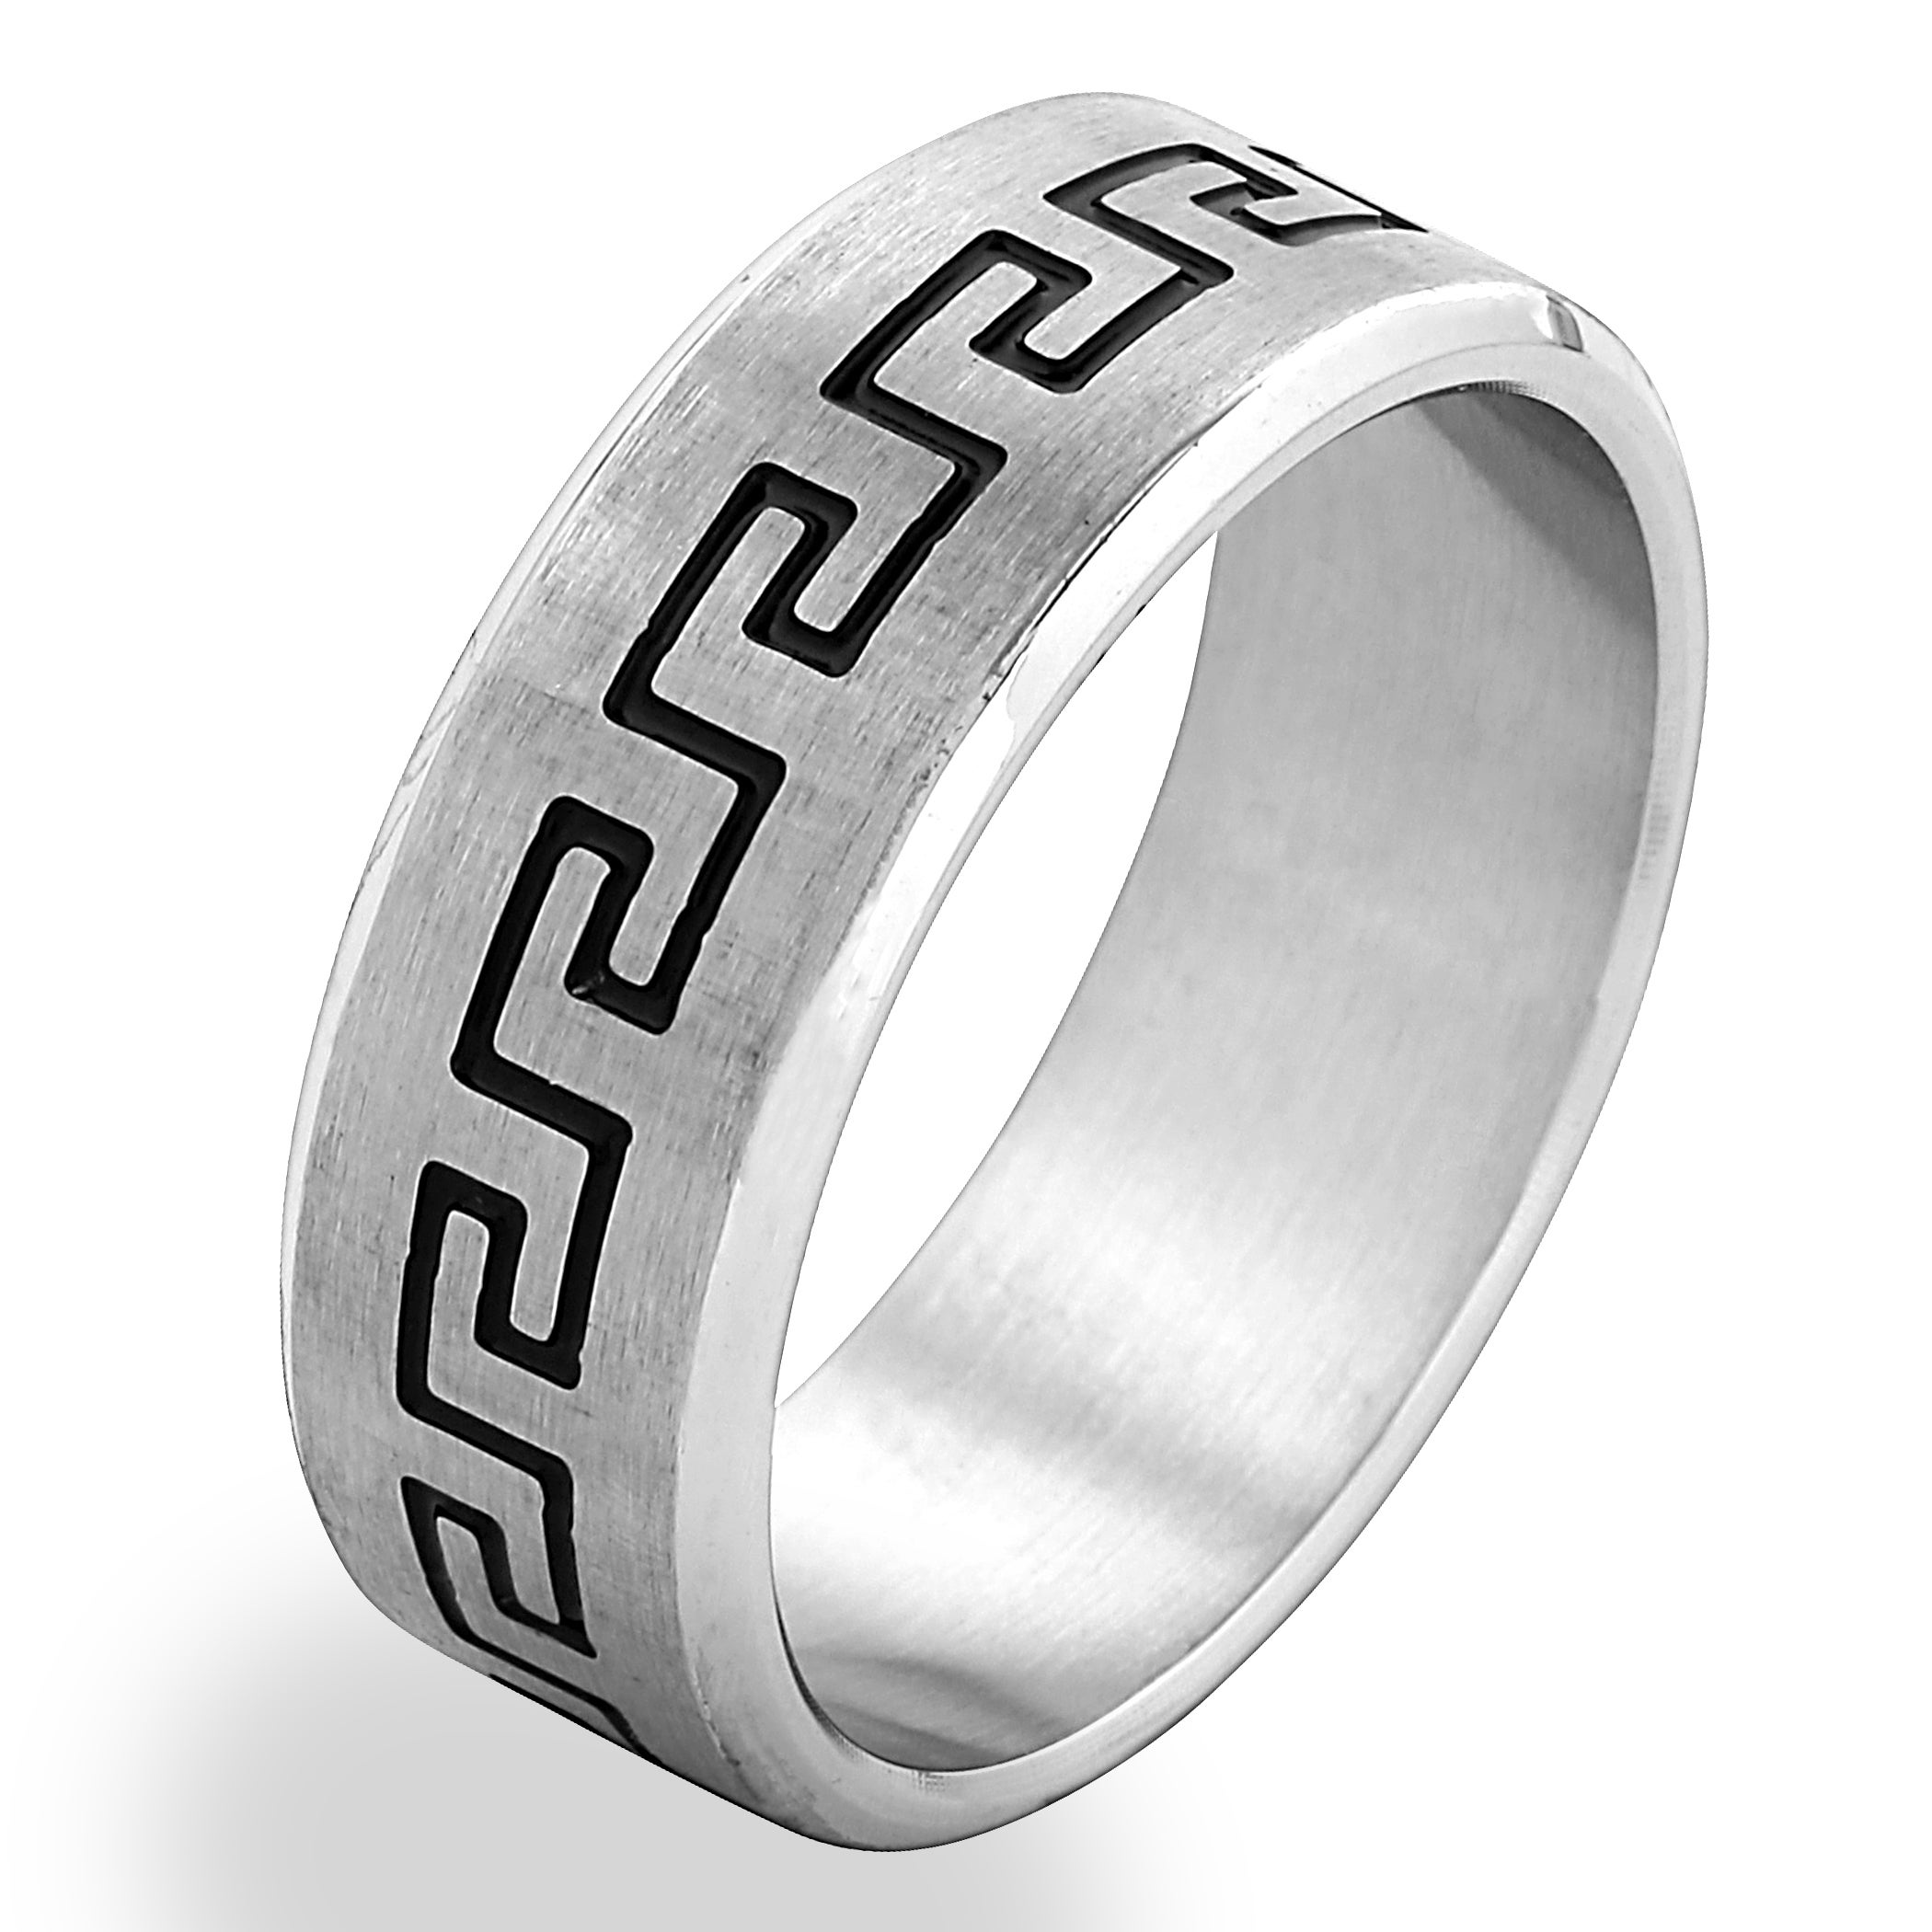 which silver amazing message sterling products pattern the features around flow lines eternity overlapping look ring pr carries aeravida of simple wrap a may t rings key to style engagement but details powerful this profoundly greek plain